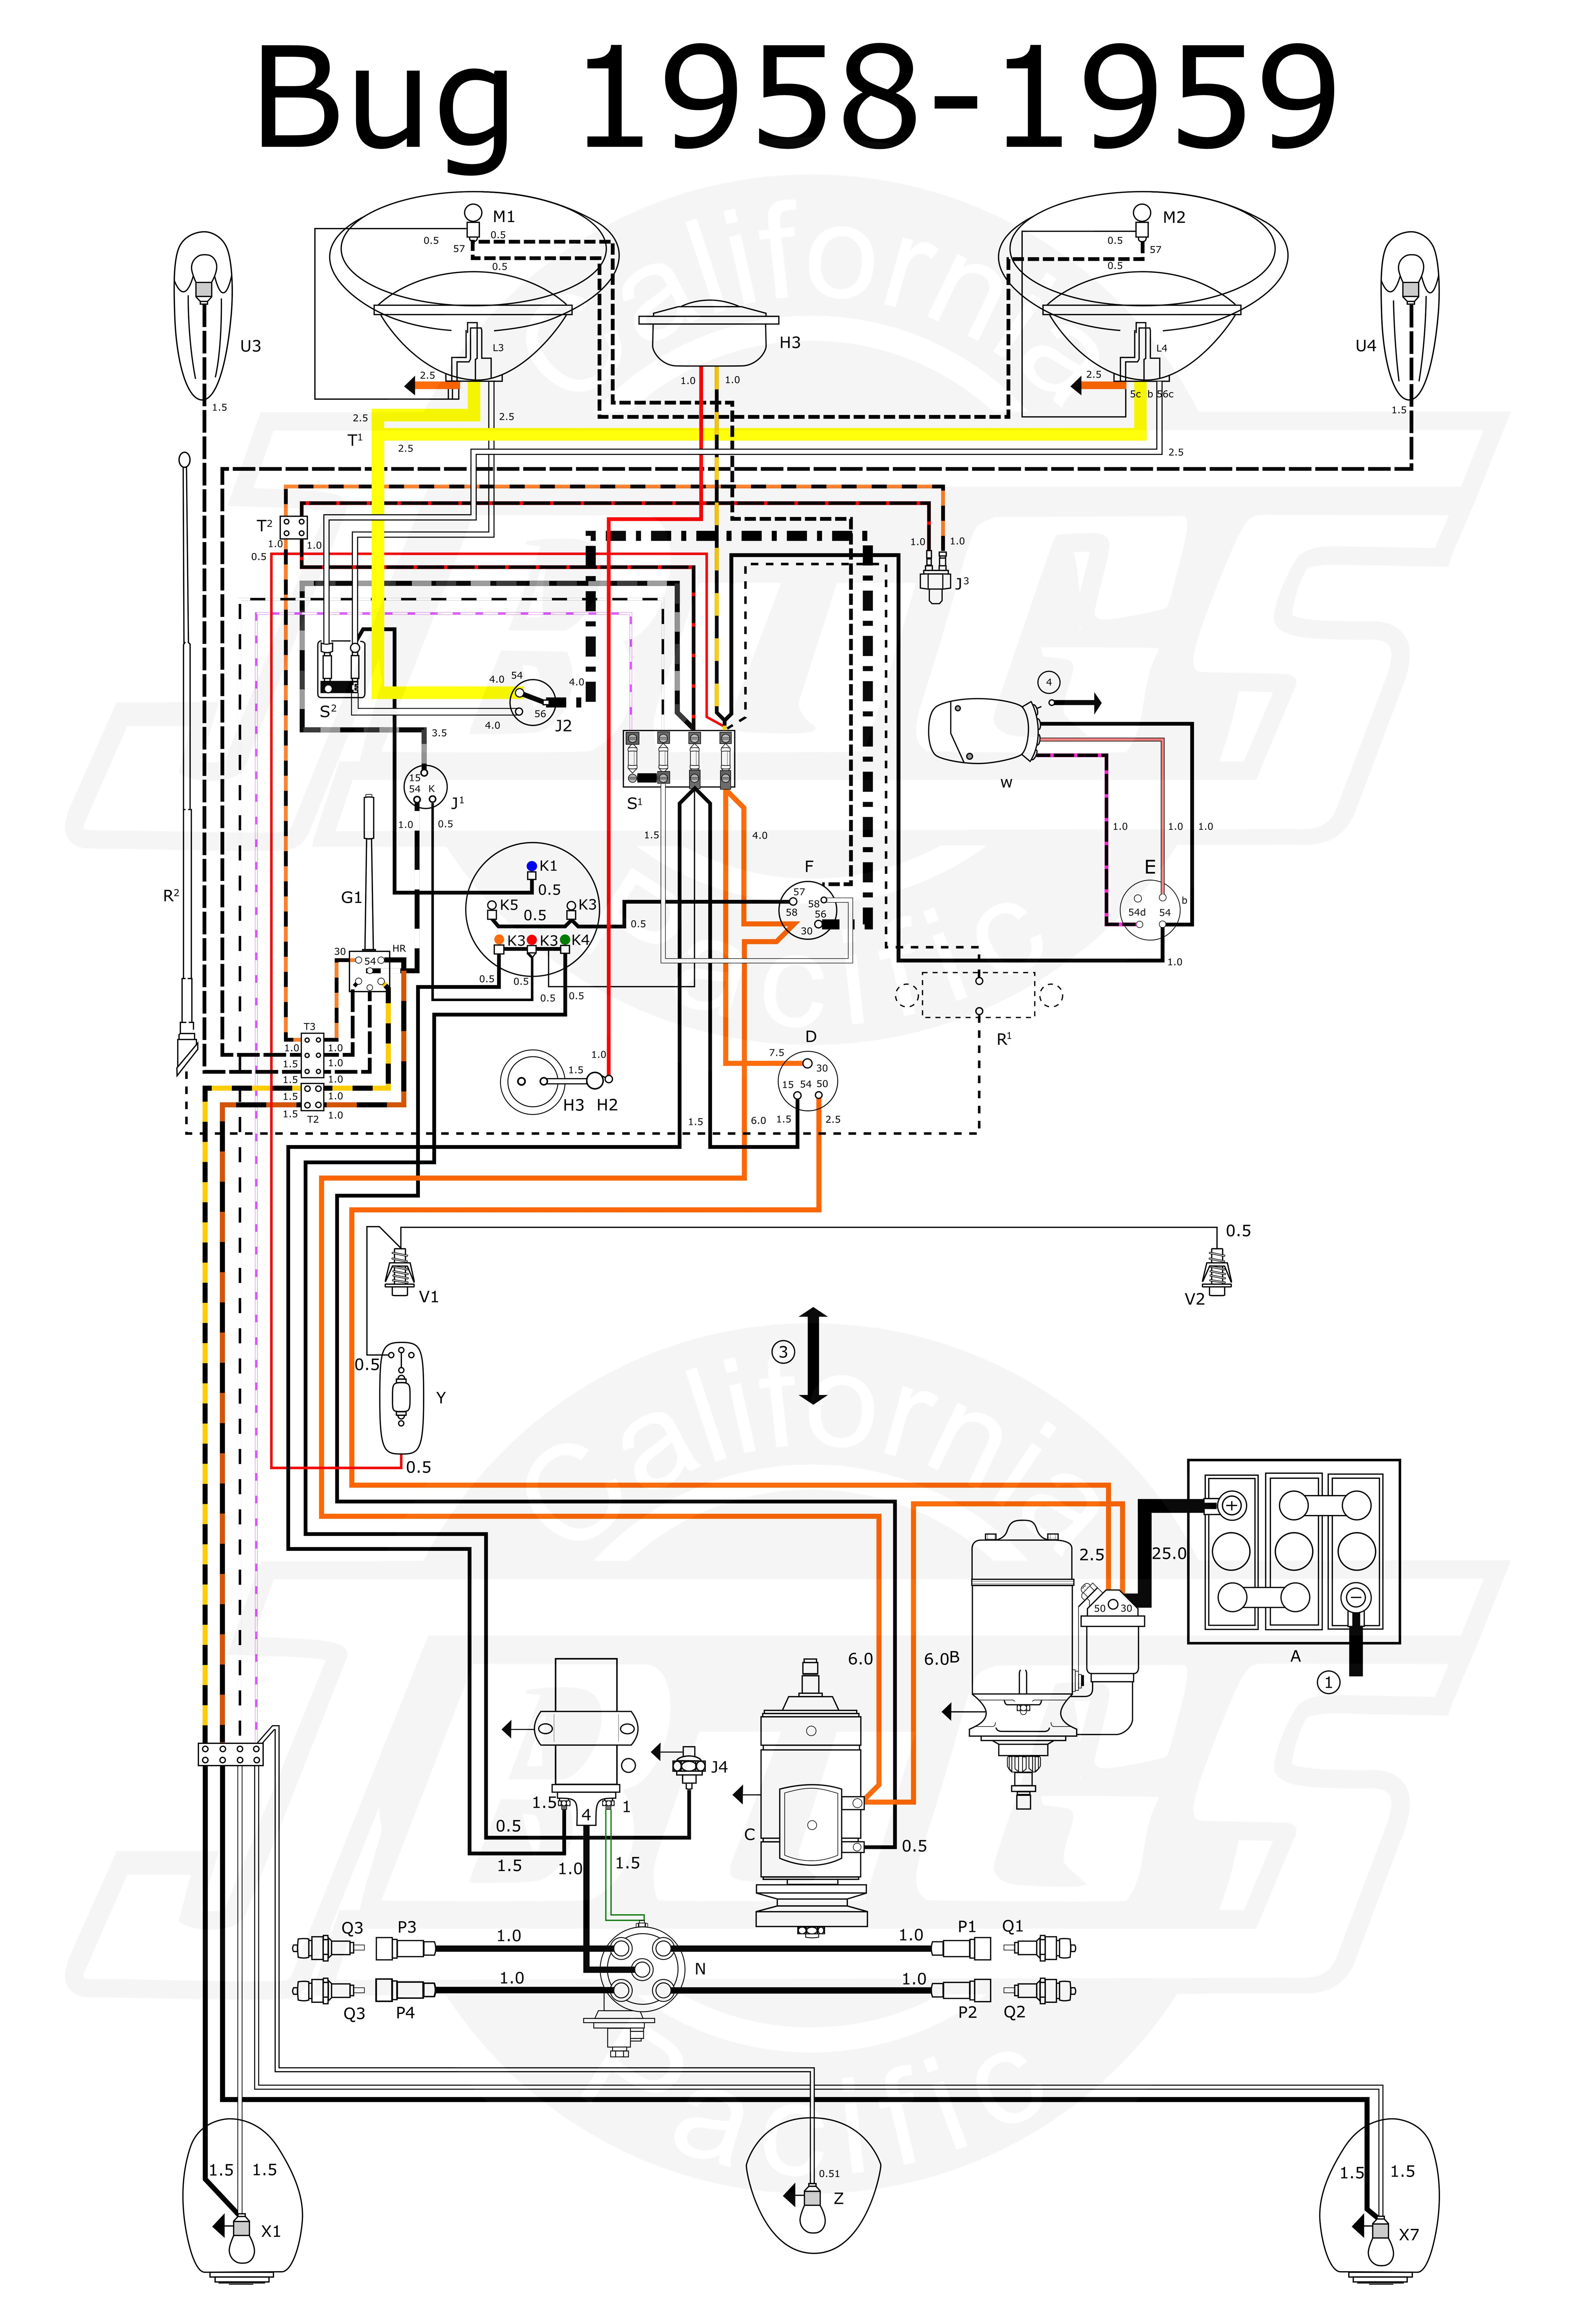 hight resolution of easy wiring harness vw air cooled wiring diagram schema air cooled vw engine wiring diagram air cooled vw wiring diagram